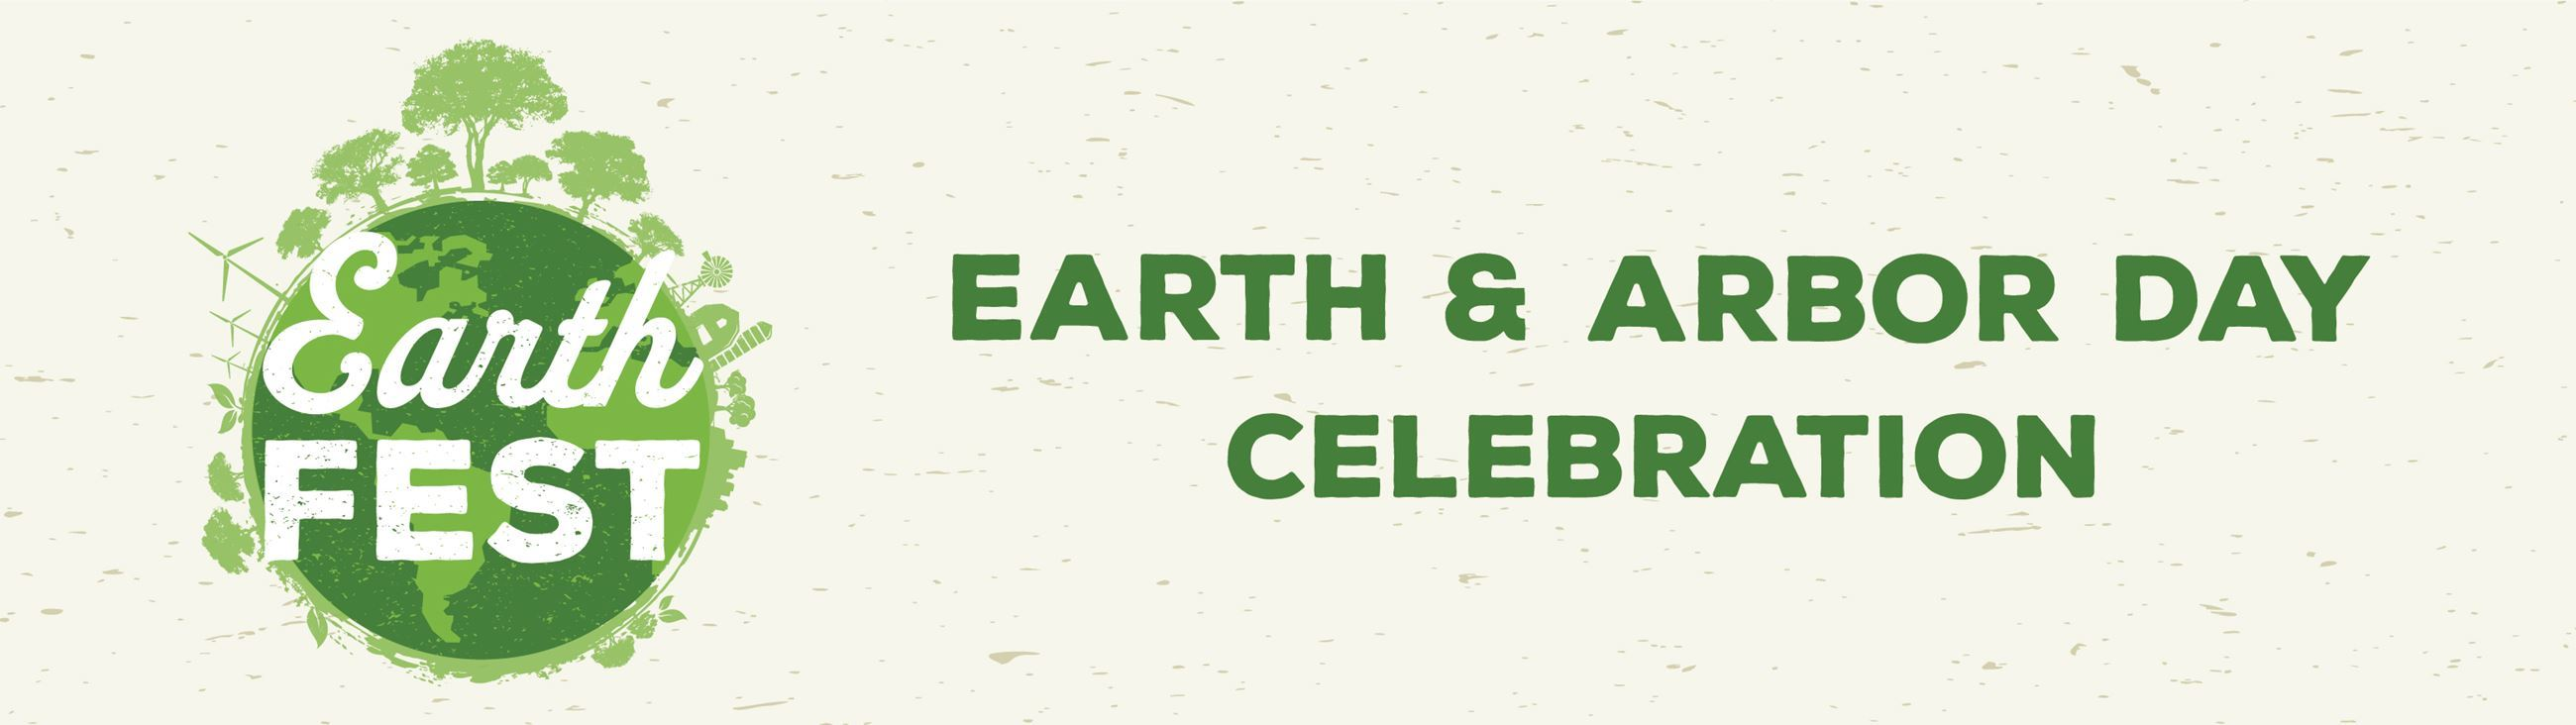 Earth Fest: Earth & Arbor Day Celebration